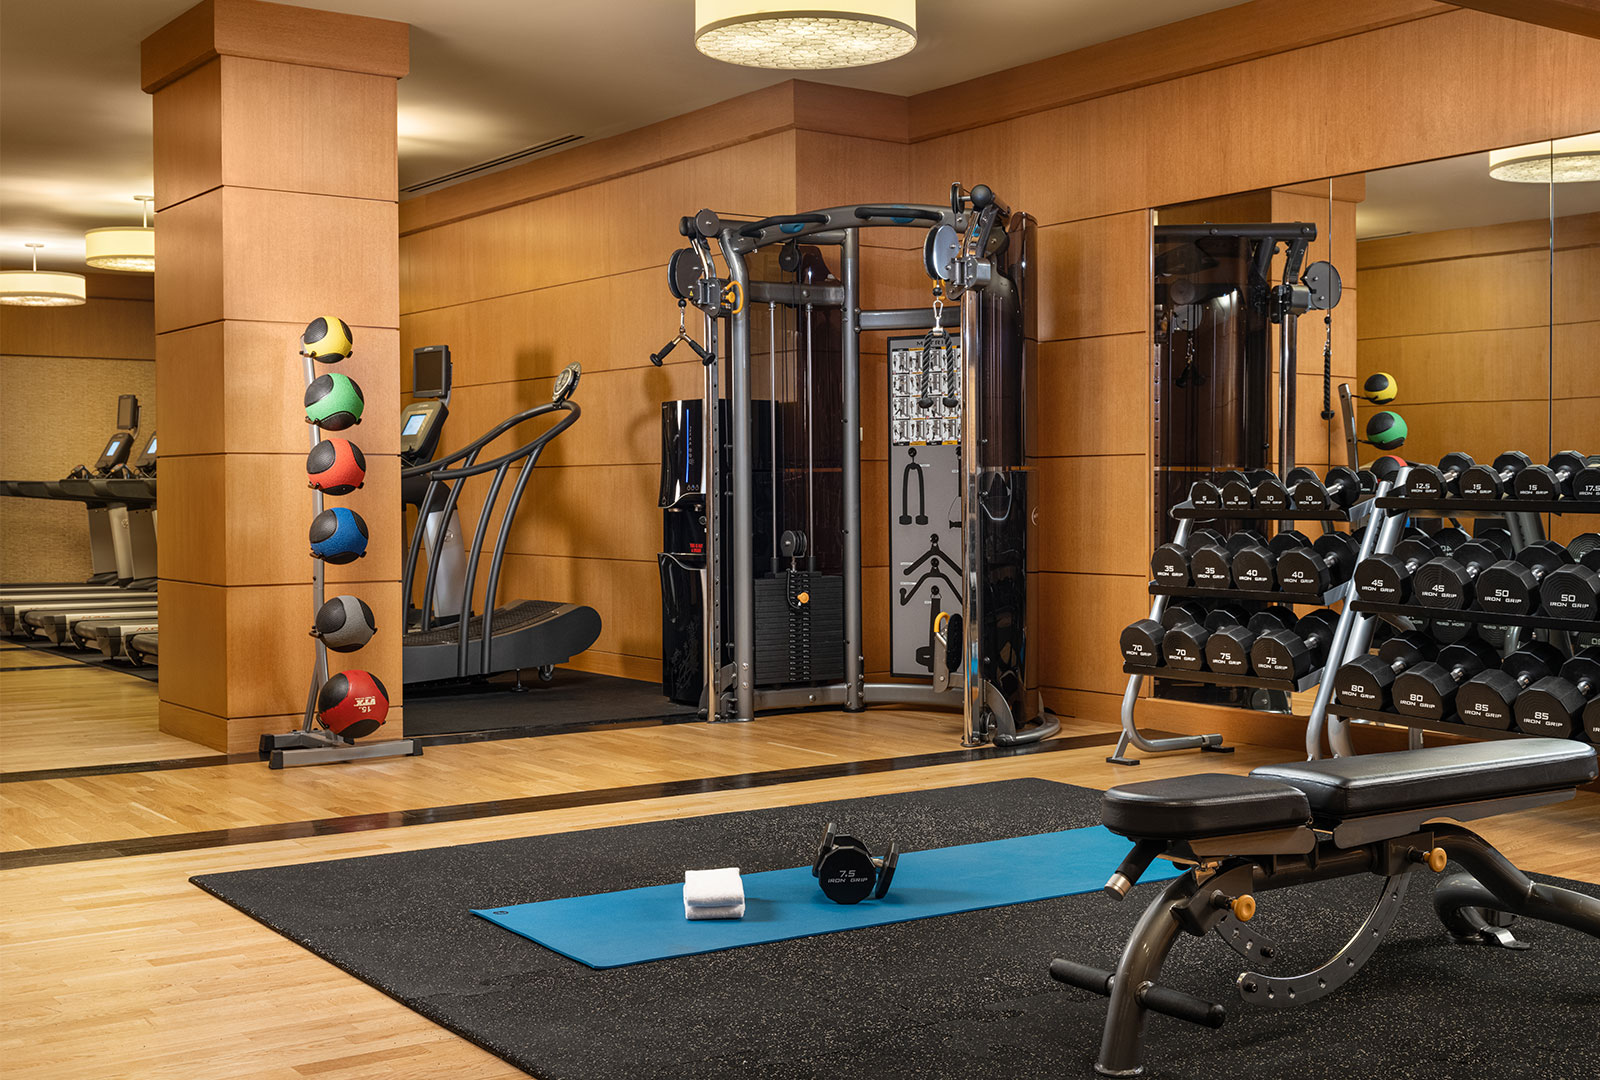 Grand America's Fitness Center featuring cardio equipment, free weights, and strength training stations.